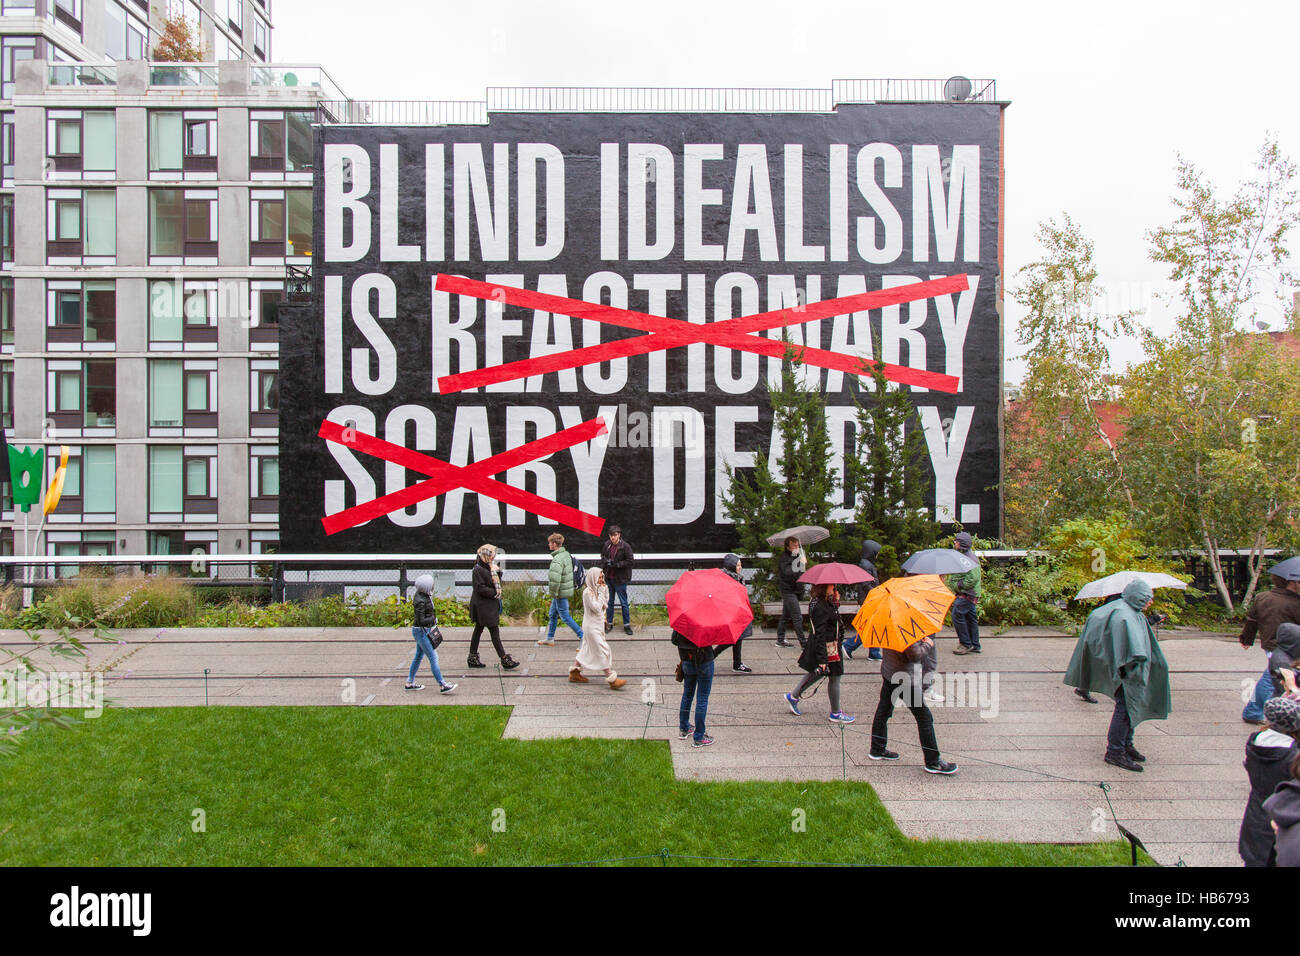 Blind idealism is Deadly by Barbara Kruger a large mural painted on the side of a building in High Line Park, New - Stock Image